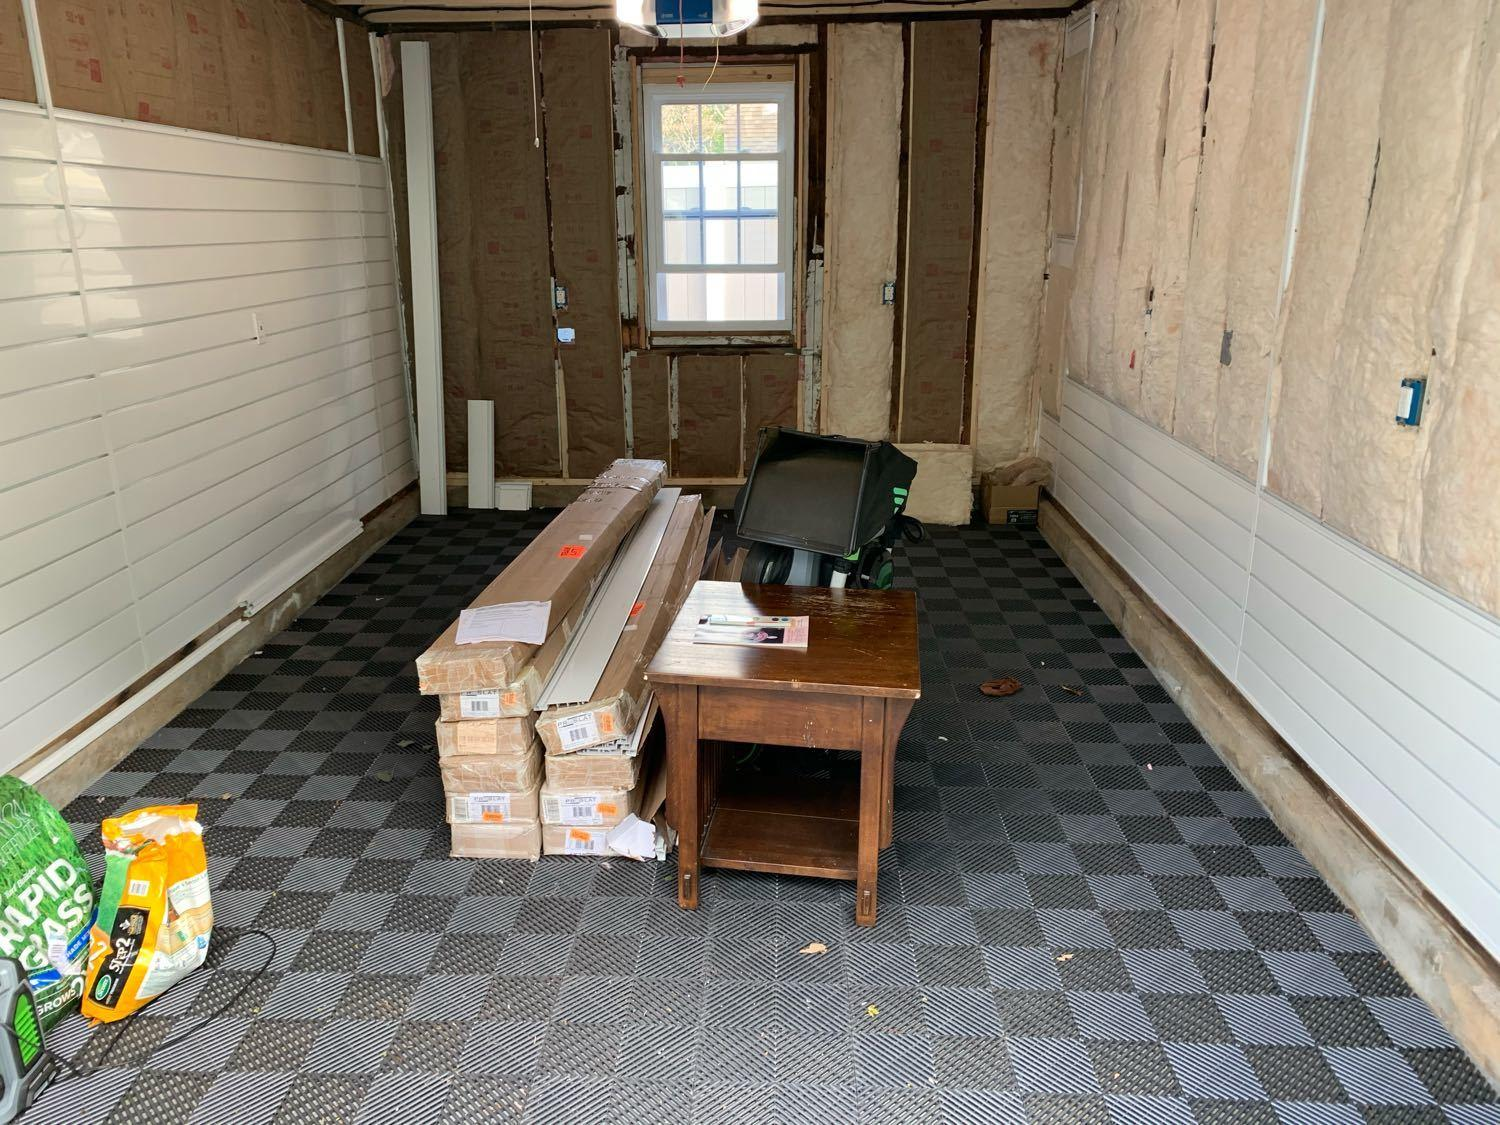 Beverly, MA Junk Removal Service - After Photo